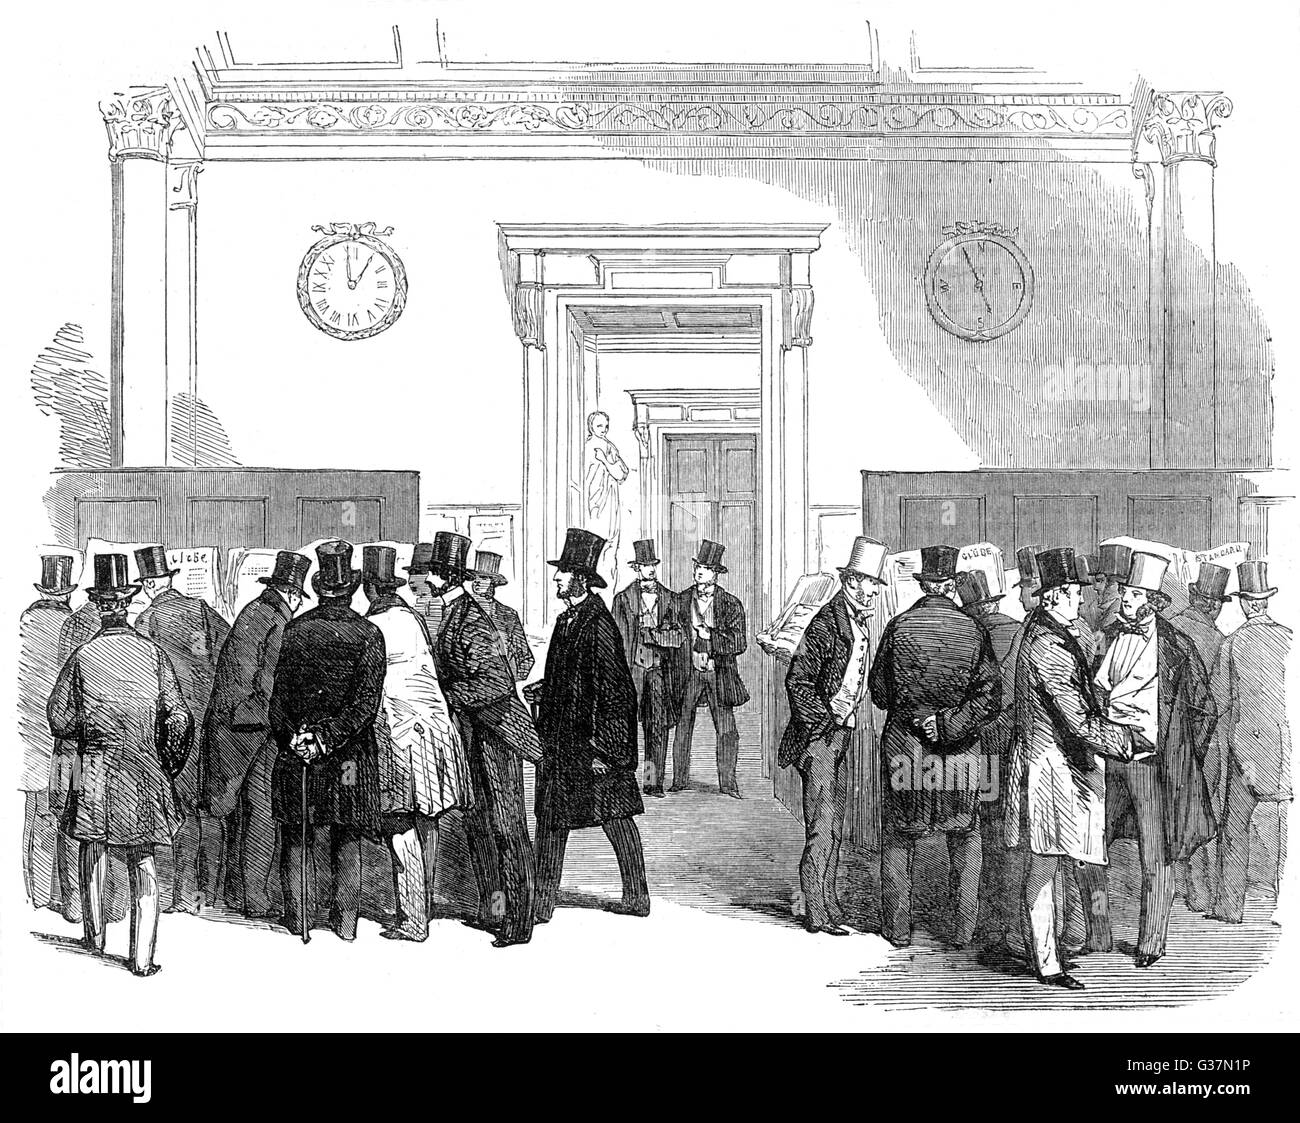 LLOYDS - scene in the  Merchants' Room as members  discuss the news from the  Crimea War       Date: 1854 - Stock Image